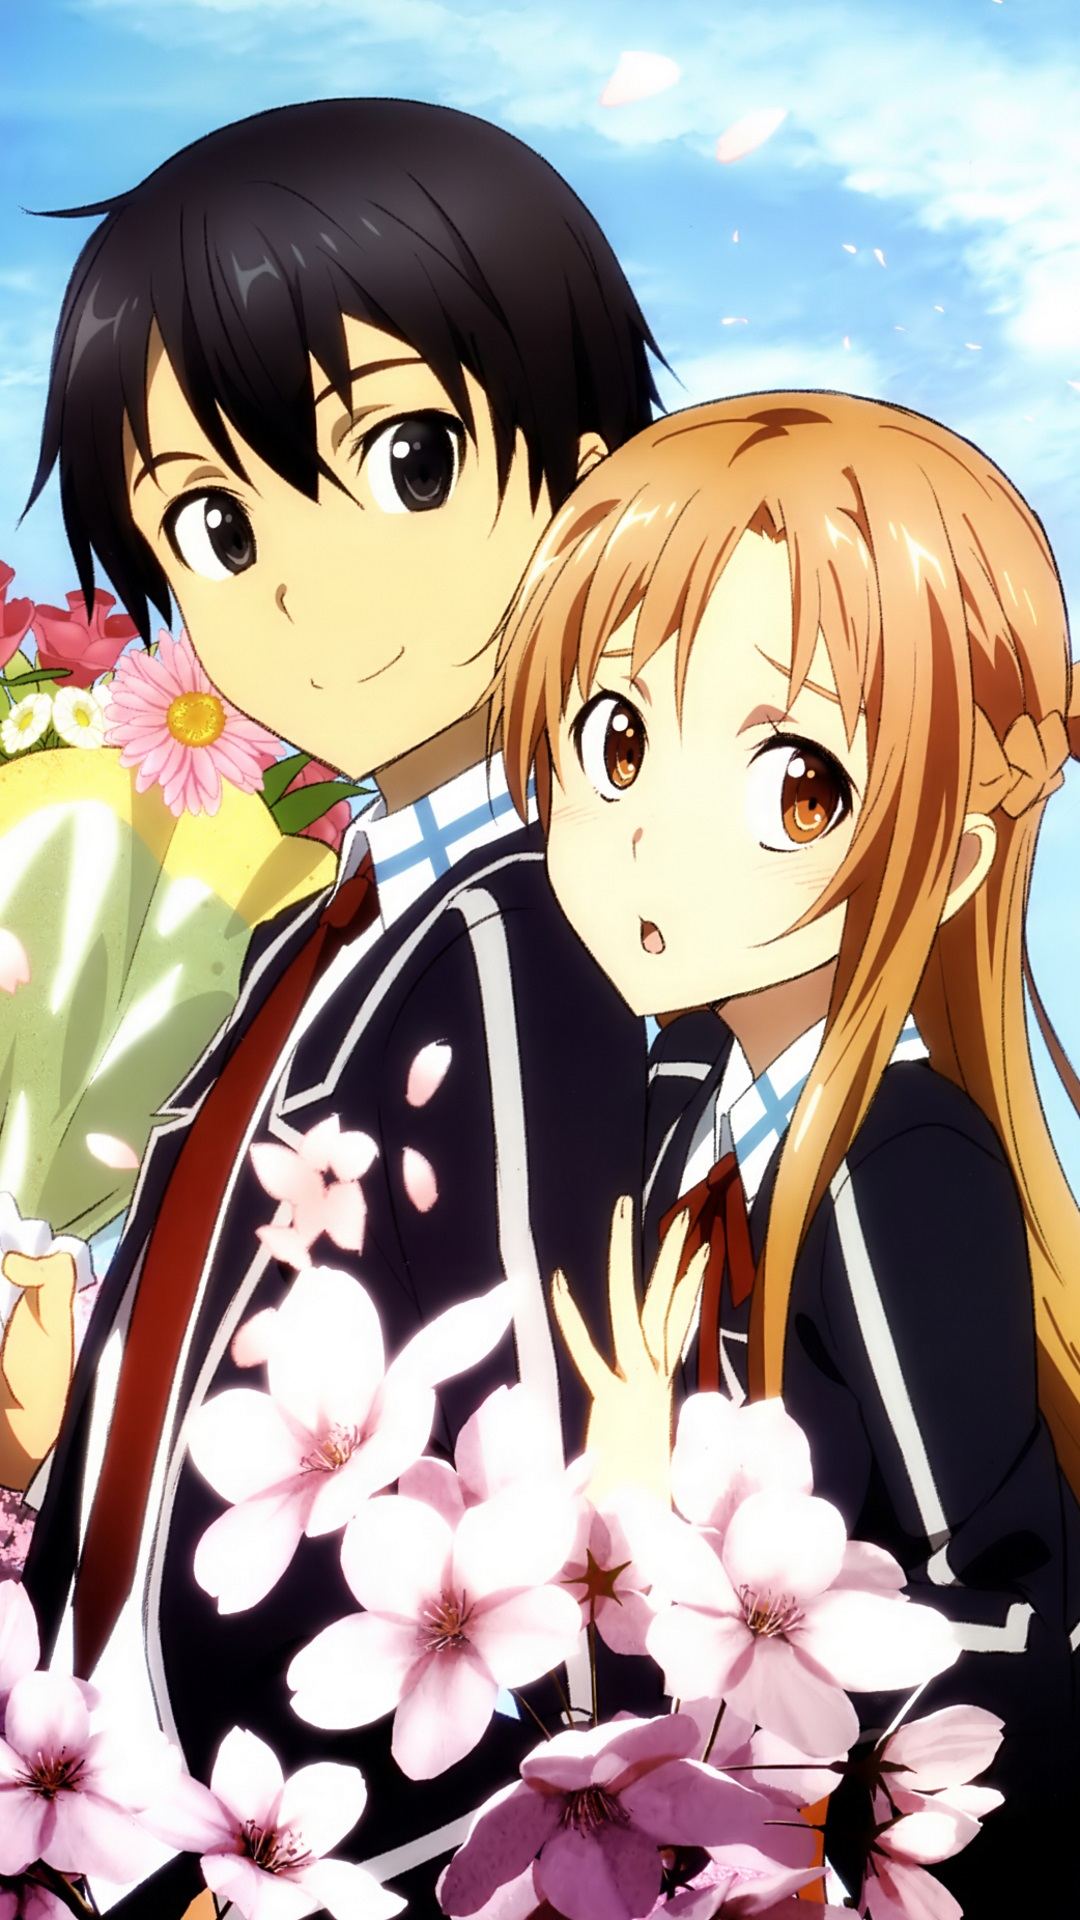 Cute Mobile Wallpaper For Samsung Galaxy Y Sword Art Online 2 Kirito Asuna Lenovo K900 Wallpaper